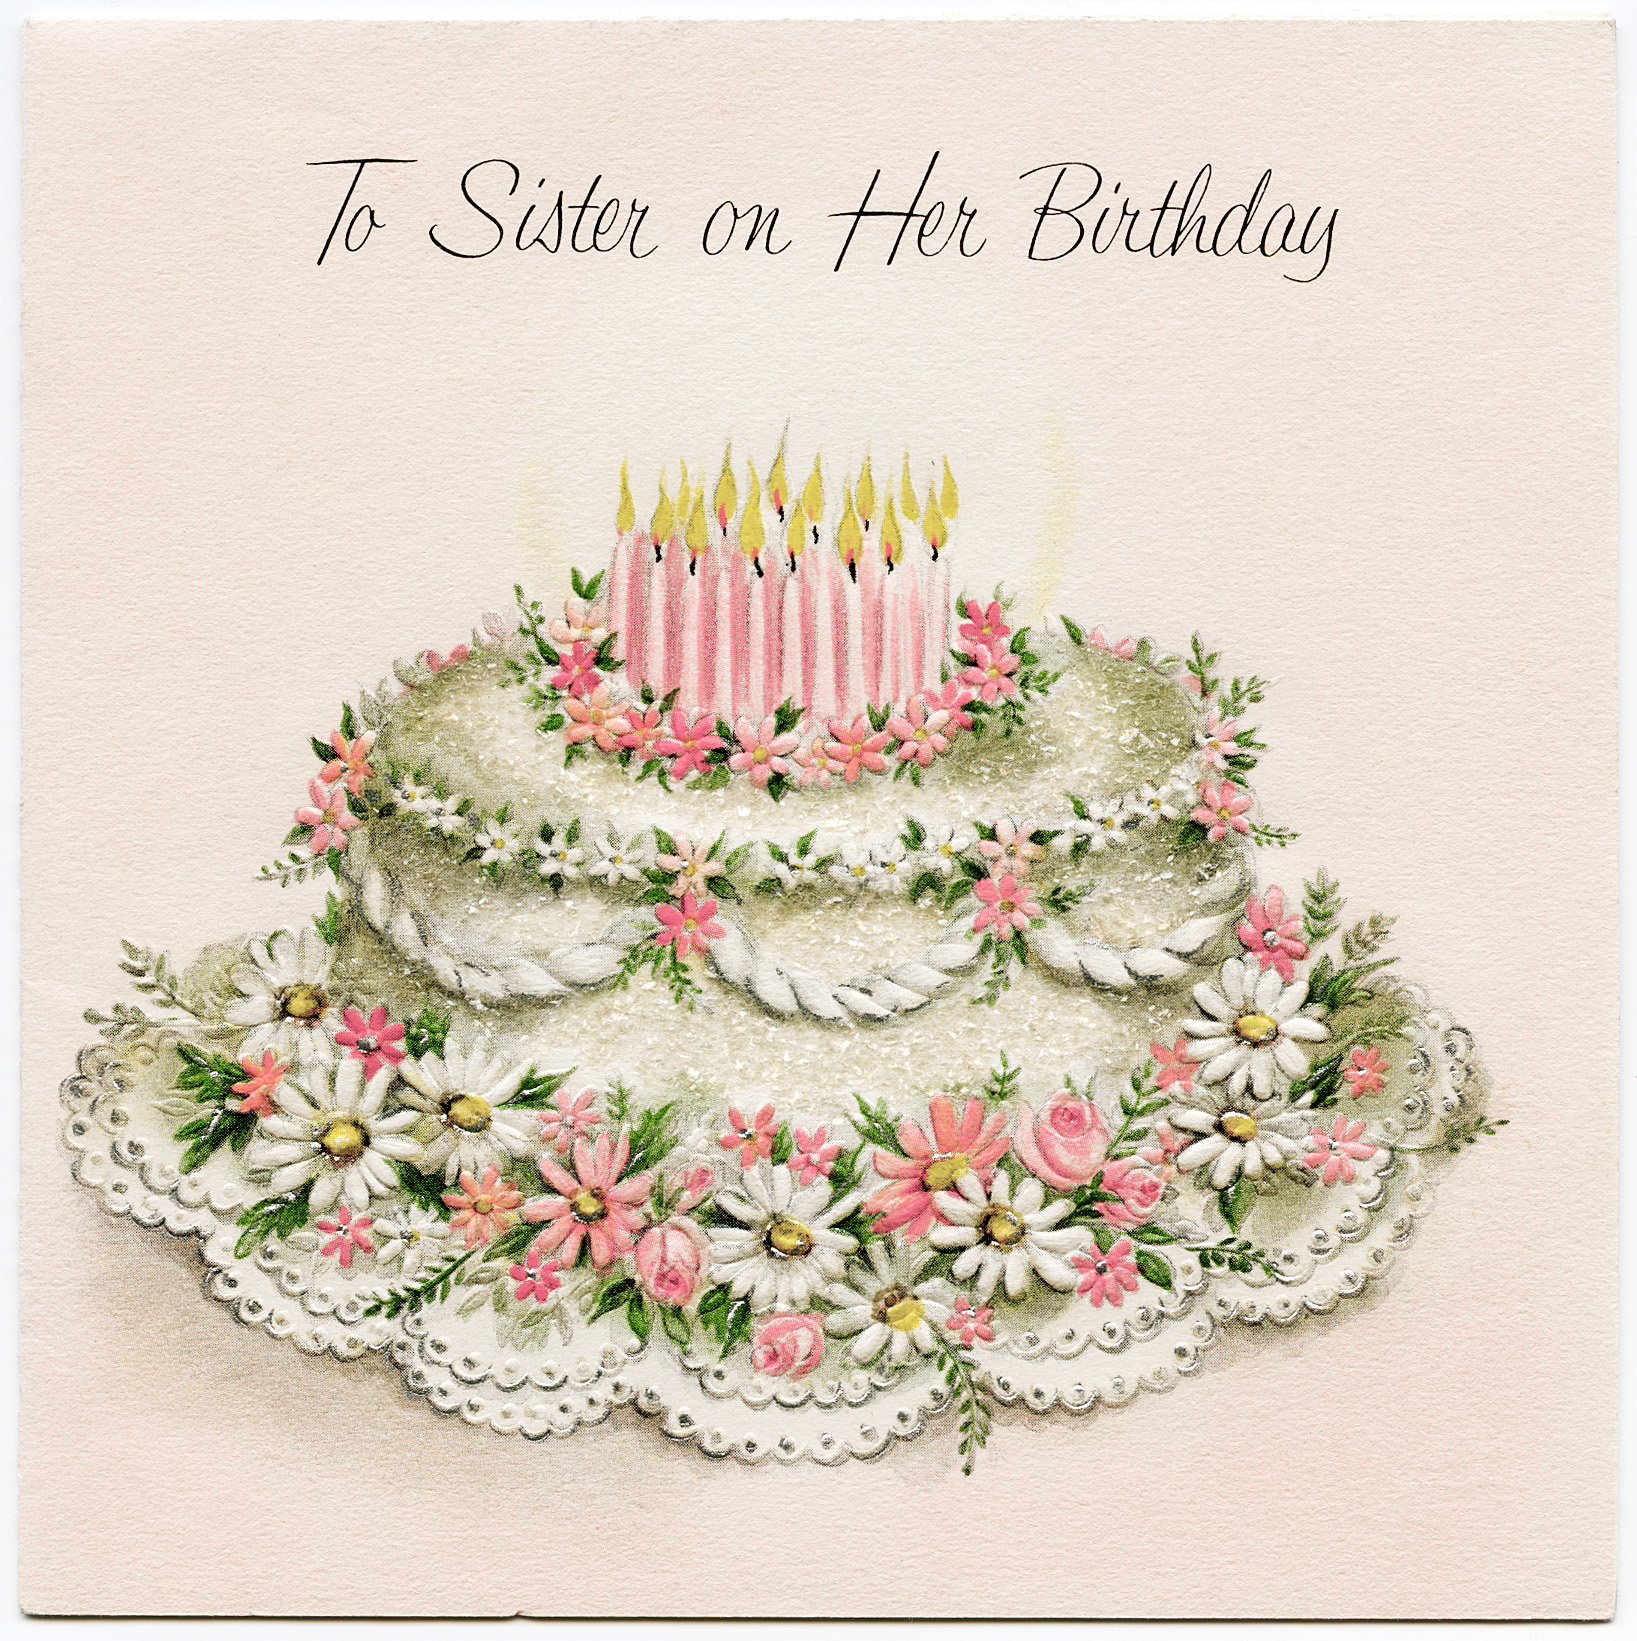 birthday greeting cards images for sister ; OldDesignShop_SisterBirthdayCard